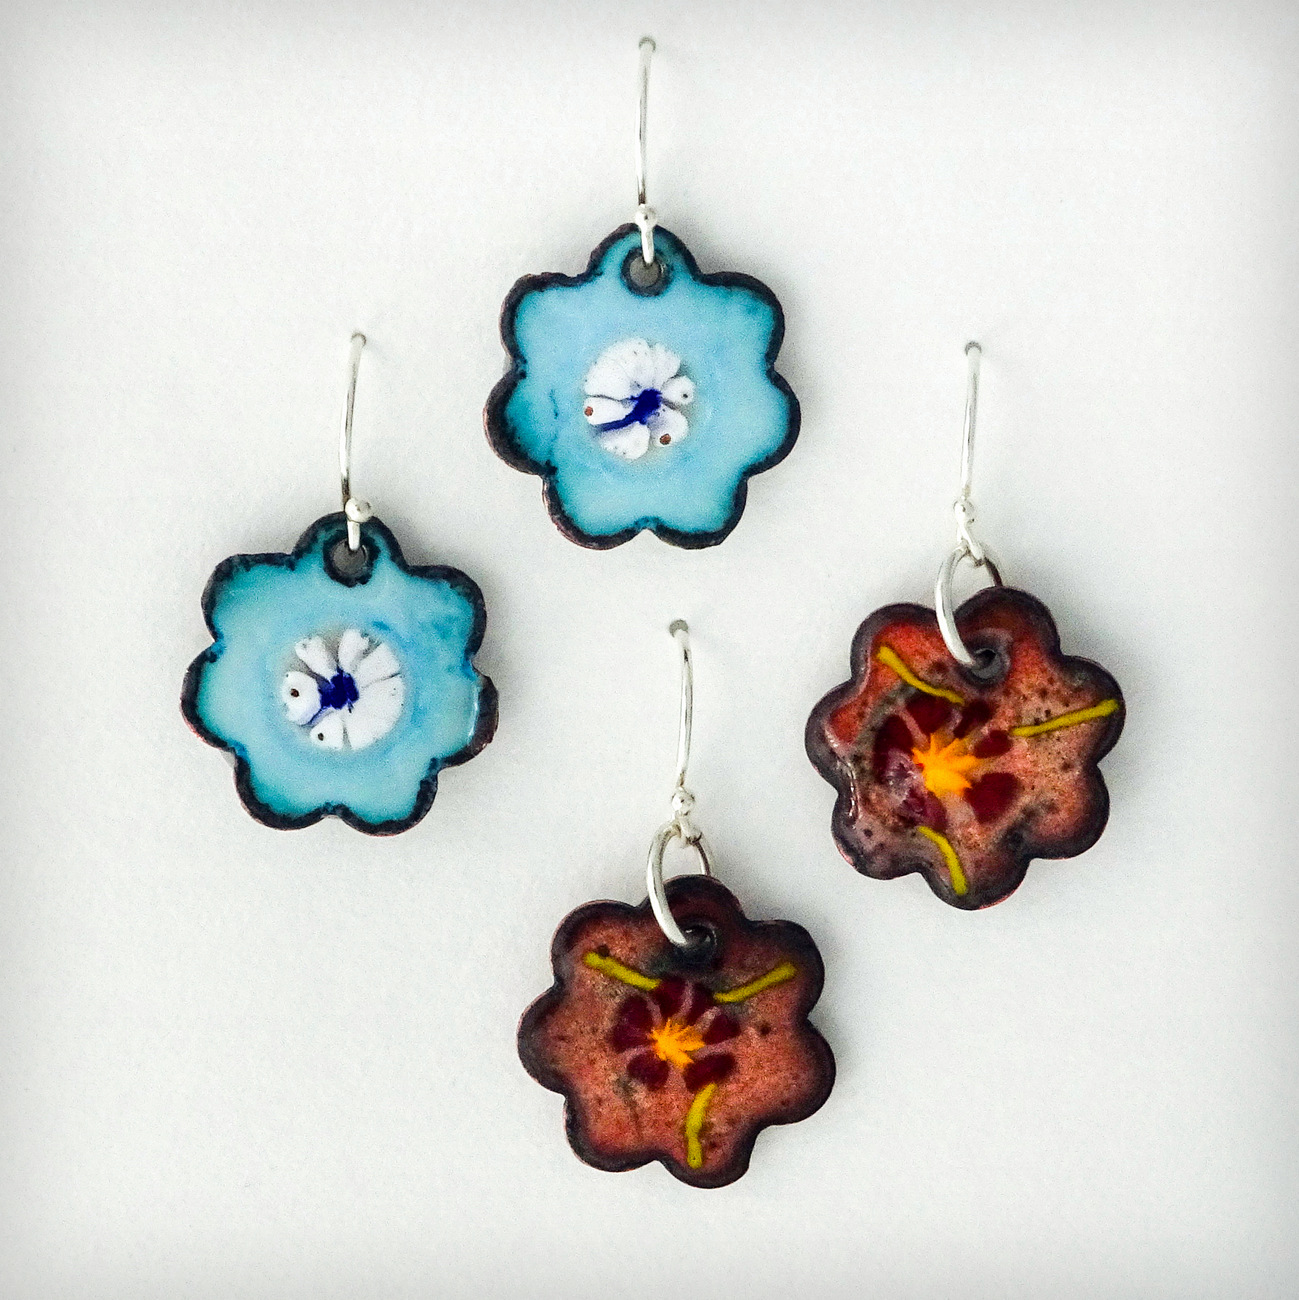 5-BLUE PANSY, D. McEachen, Flower Earrings-003.JPG